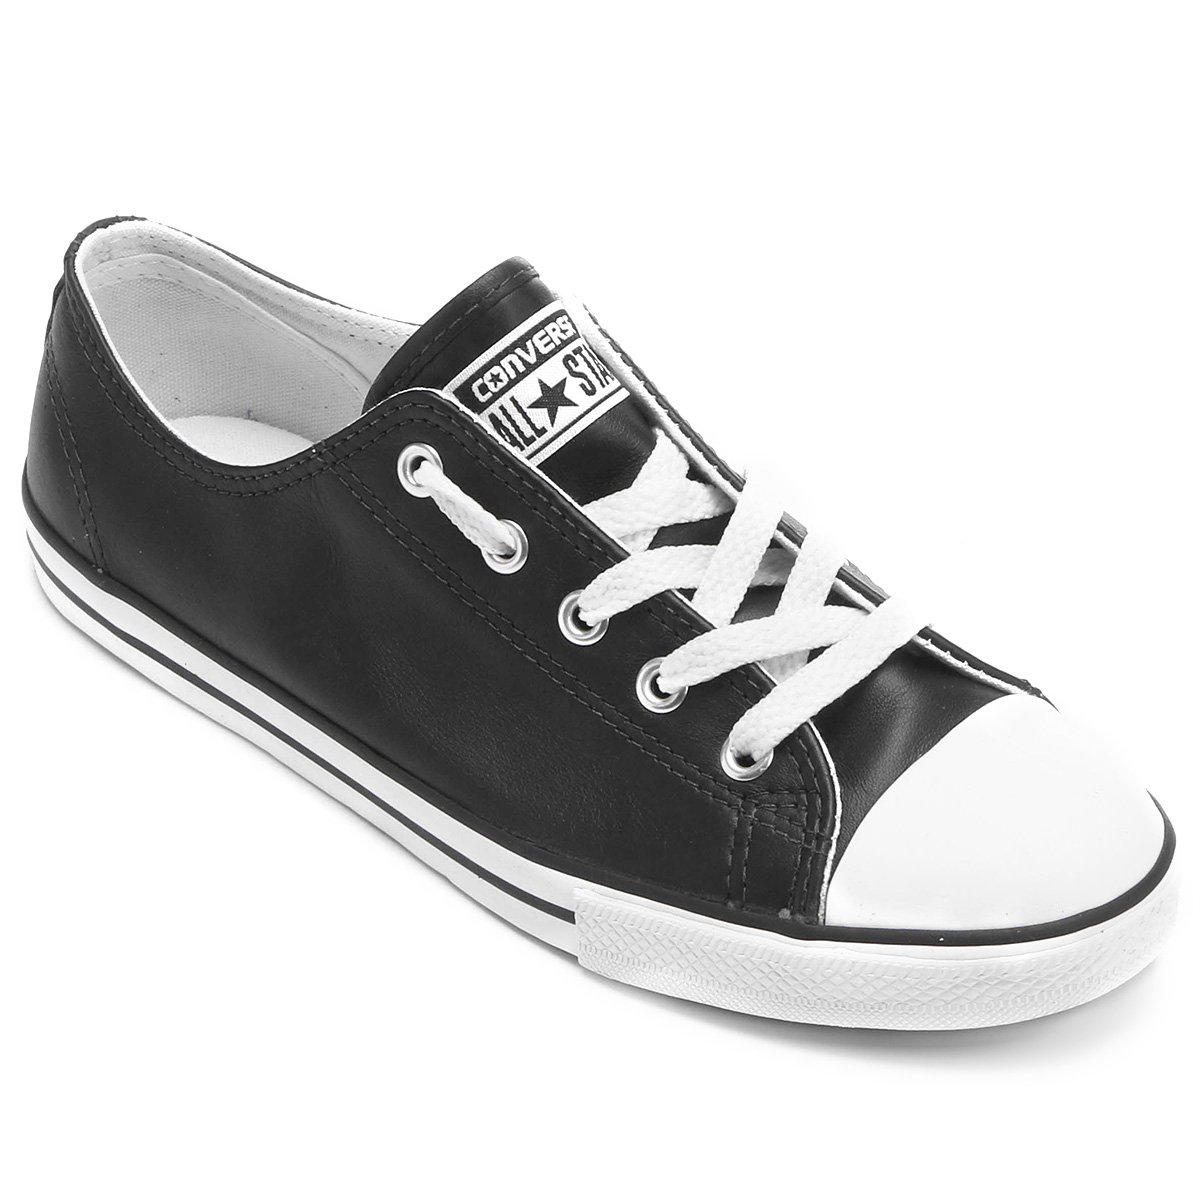 09599c00bc0 Tênis Converse All Star Ct As Dainty Leather Ox - Compre Agora ...